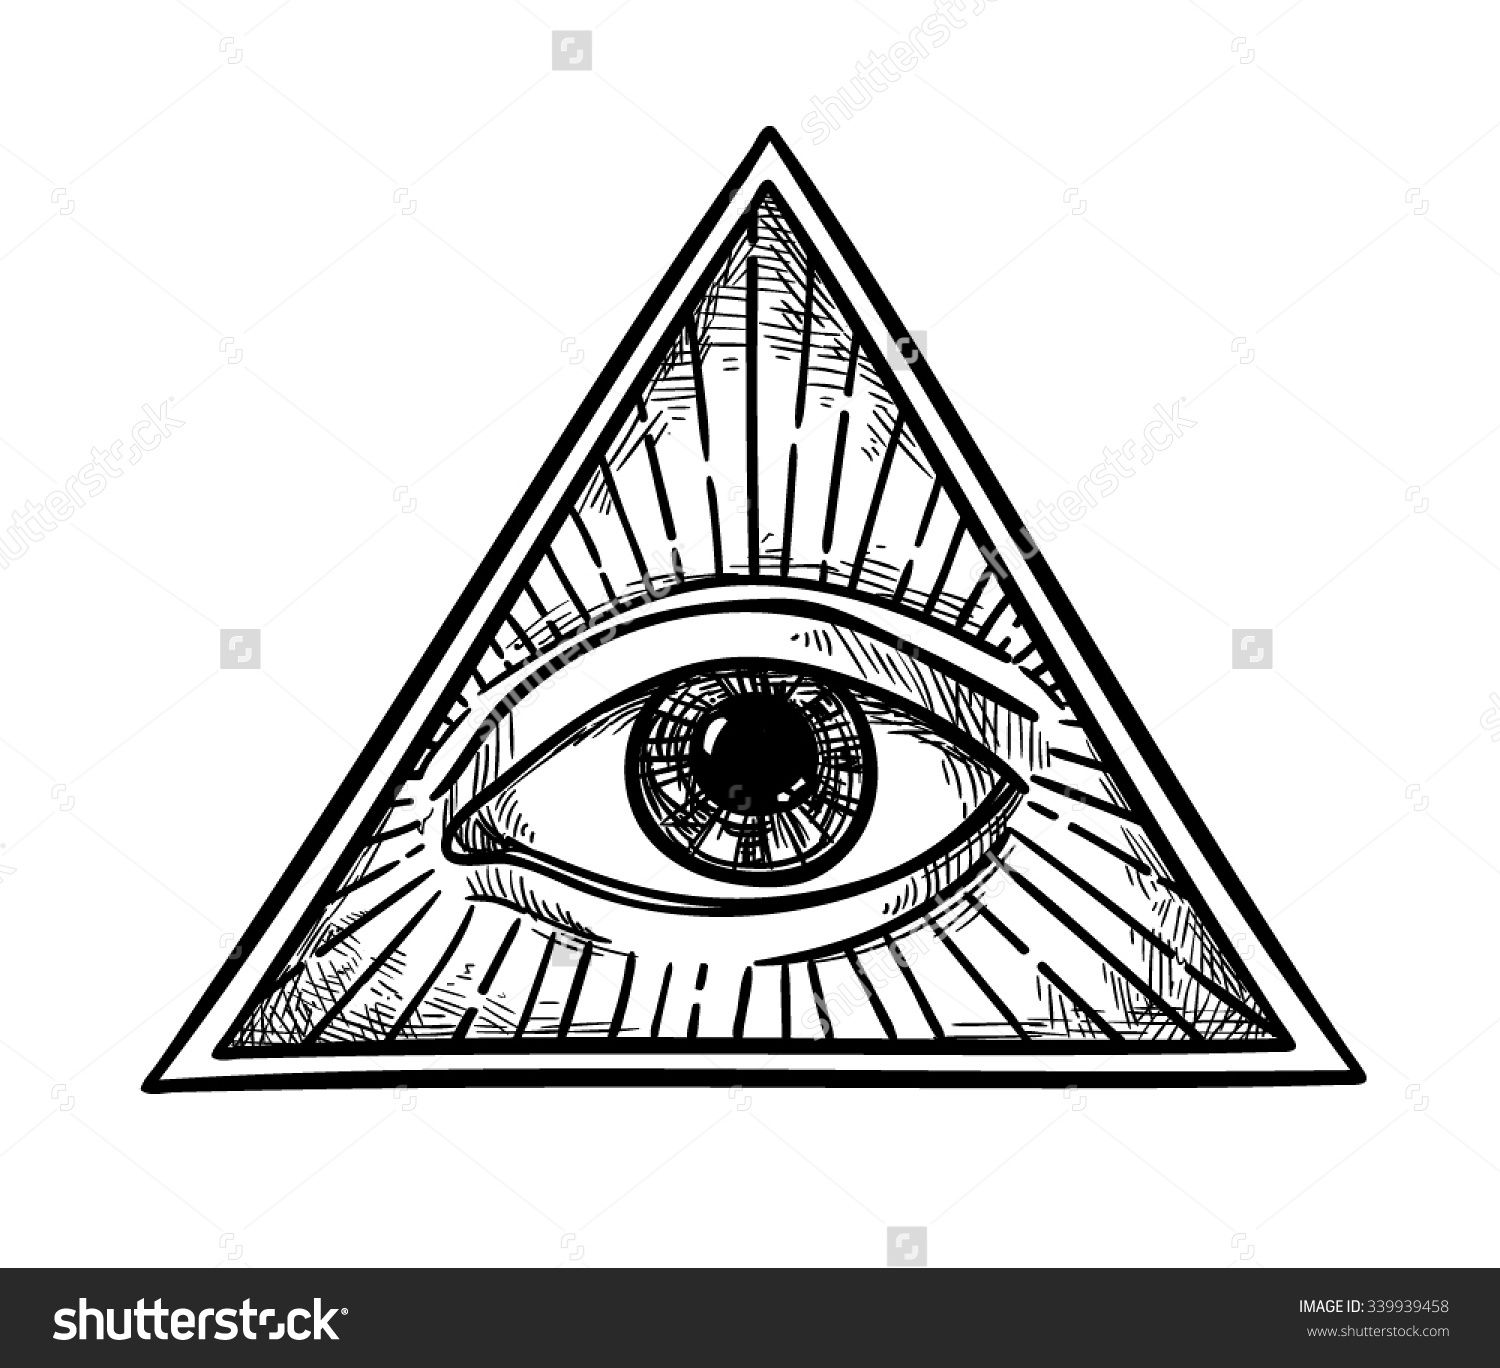 All seeing eye pyramid symbol in the engraving tattoo